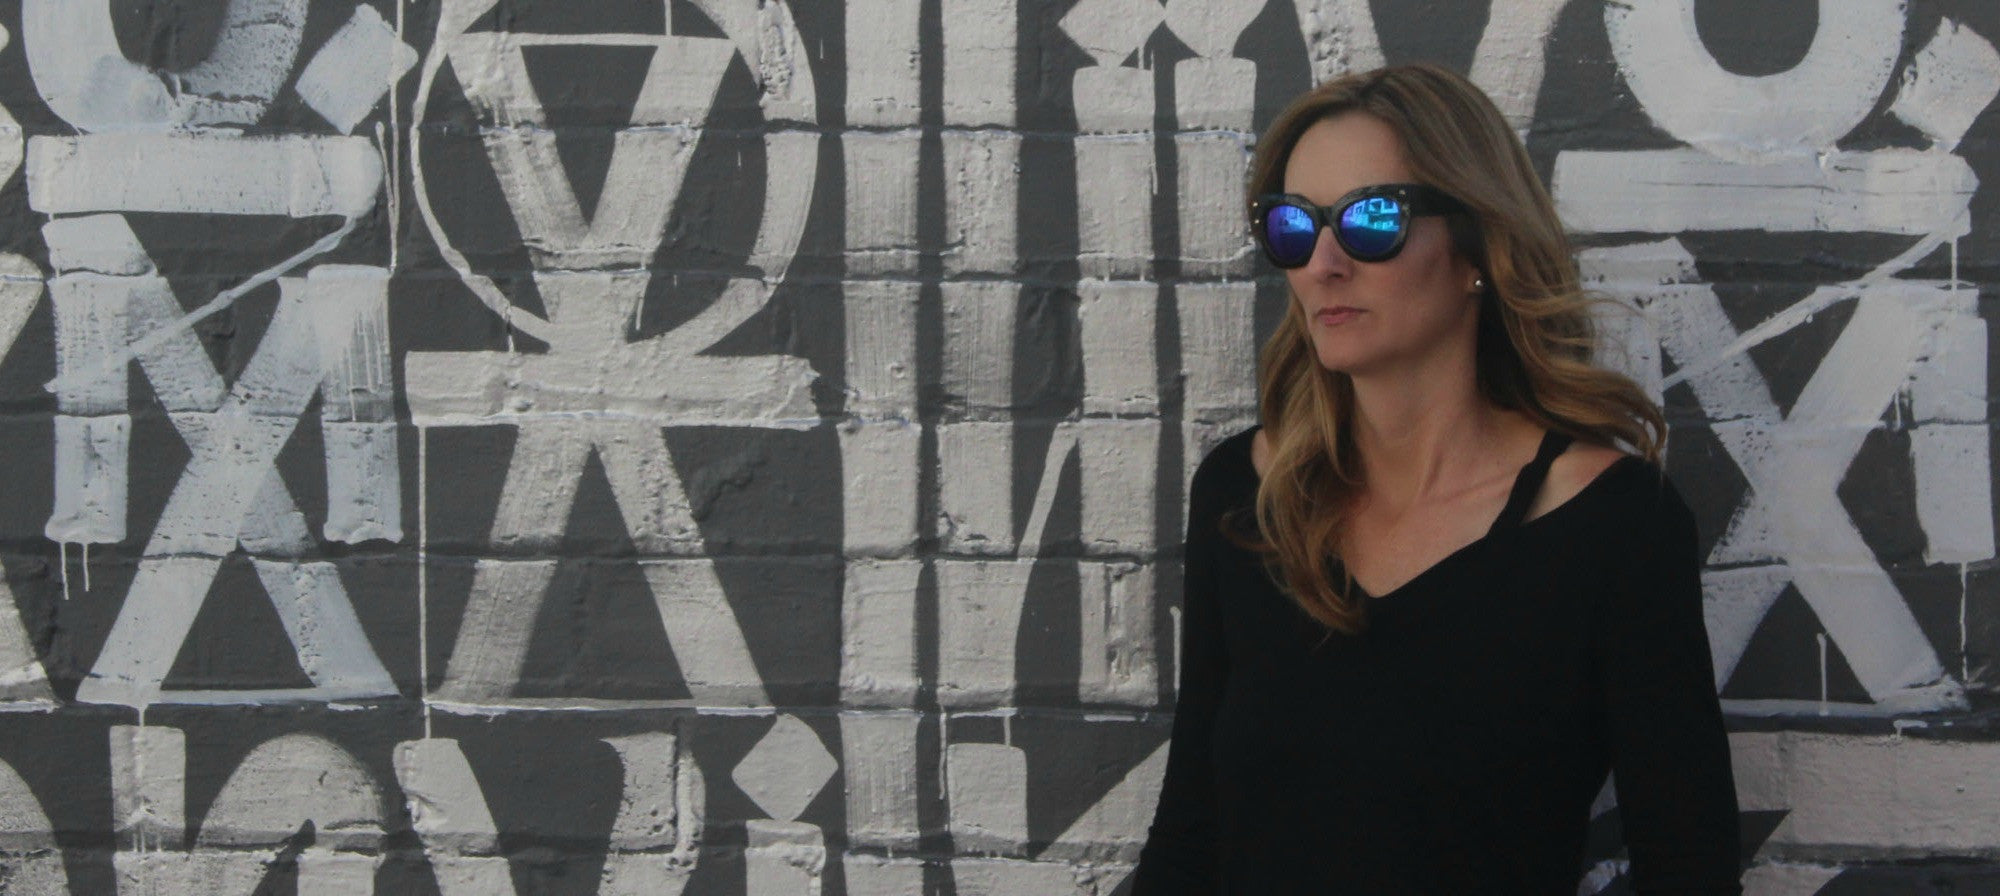 Edgy, thick-rimmed women's fashion sunglasses with stud detail and mirrored lenses inspired by Los Angeles, the City of Angels | socalsunnies.com